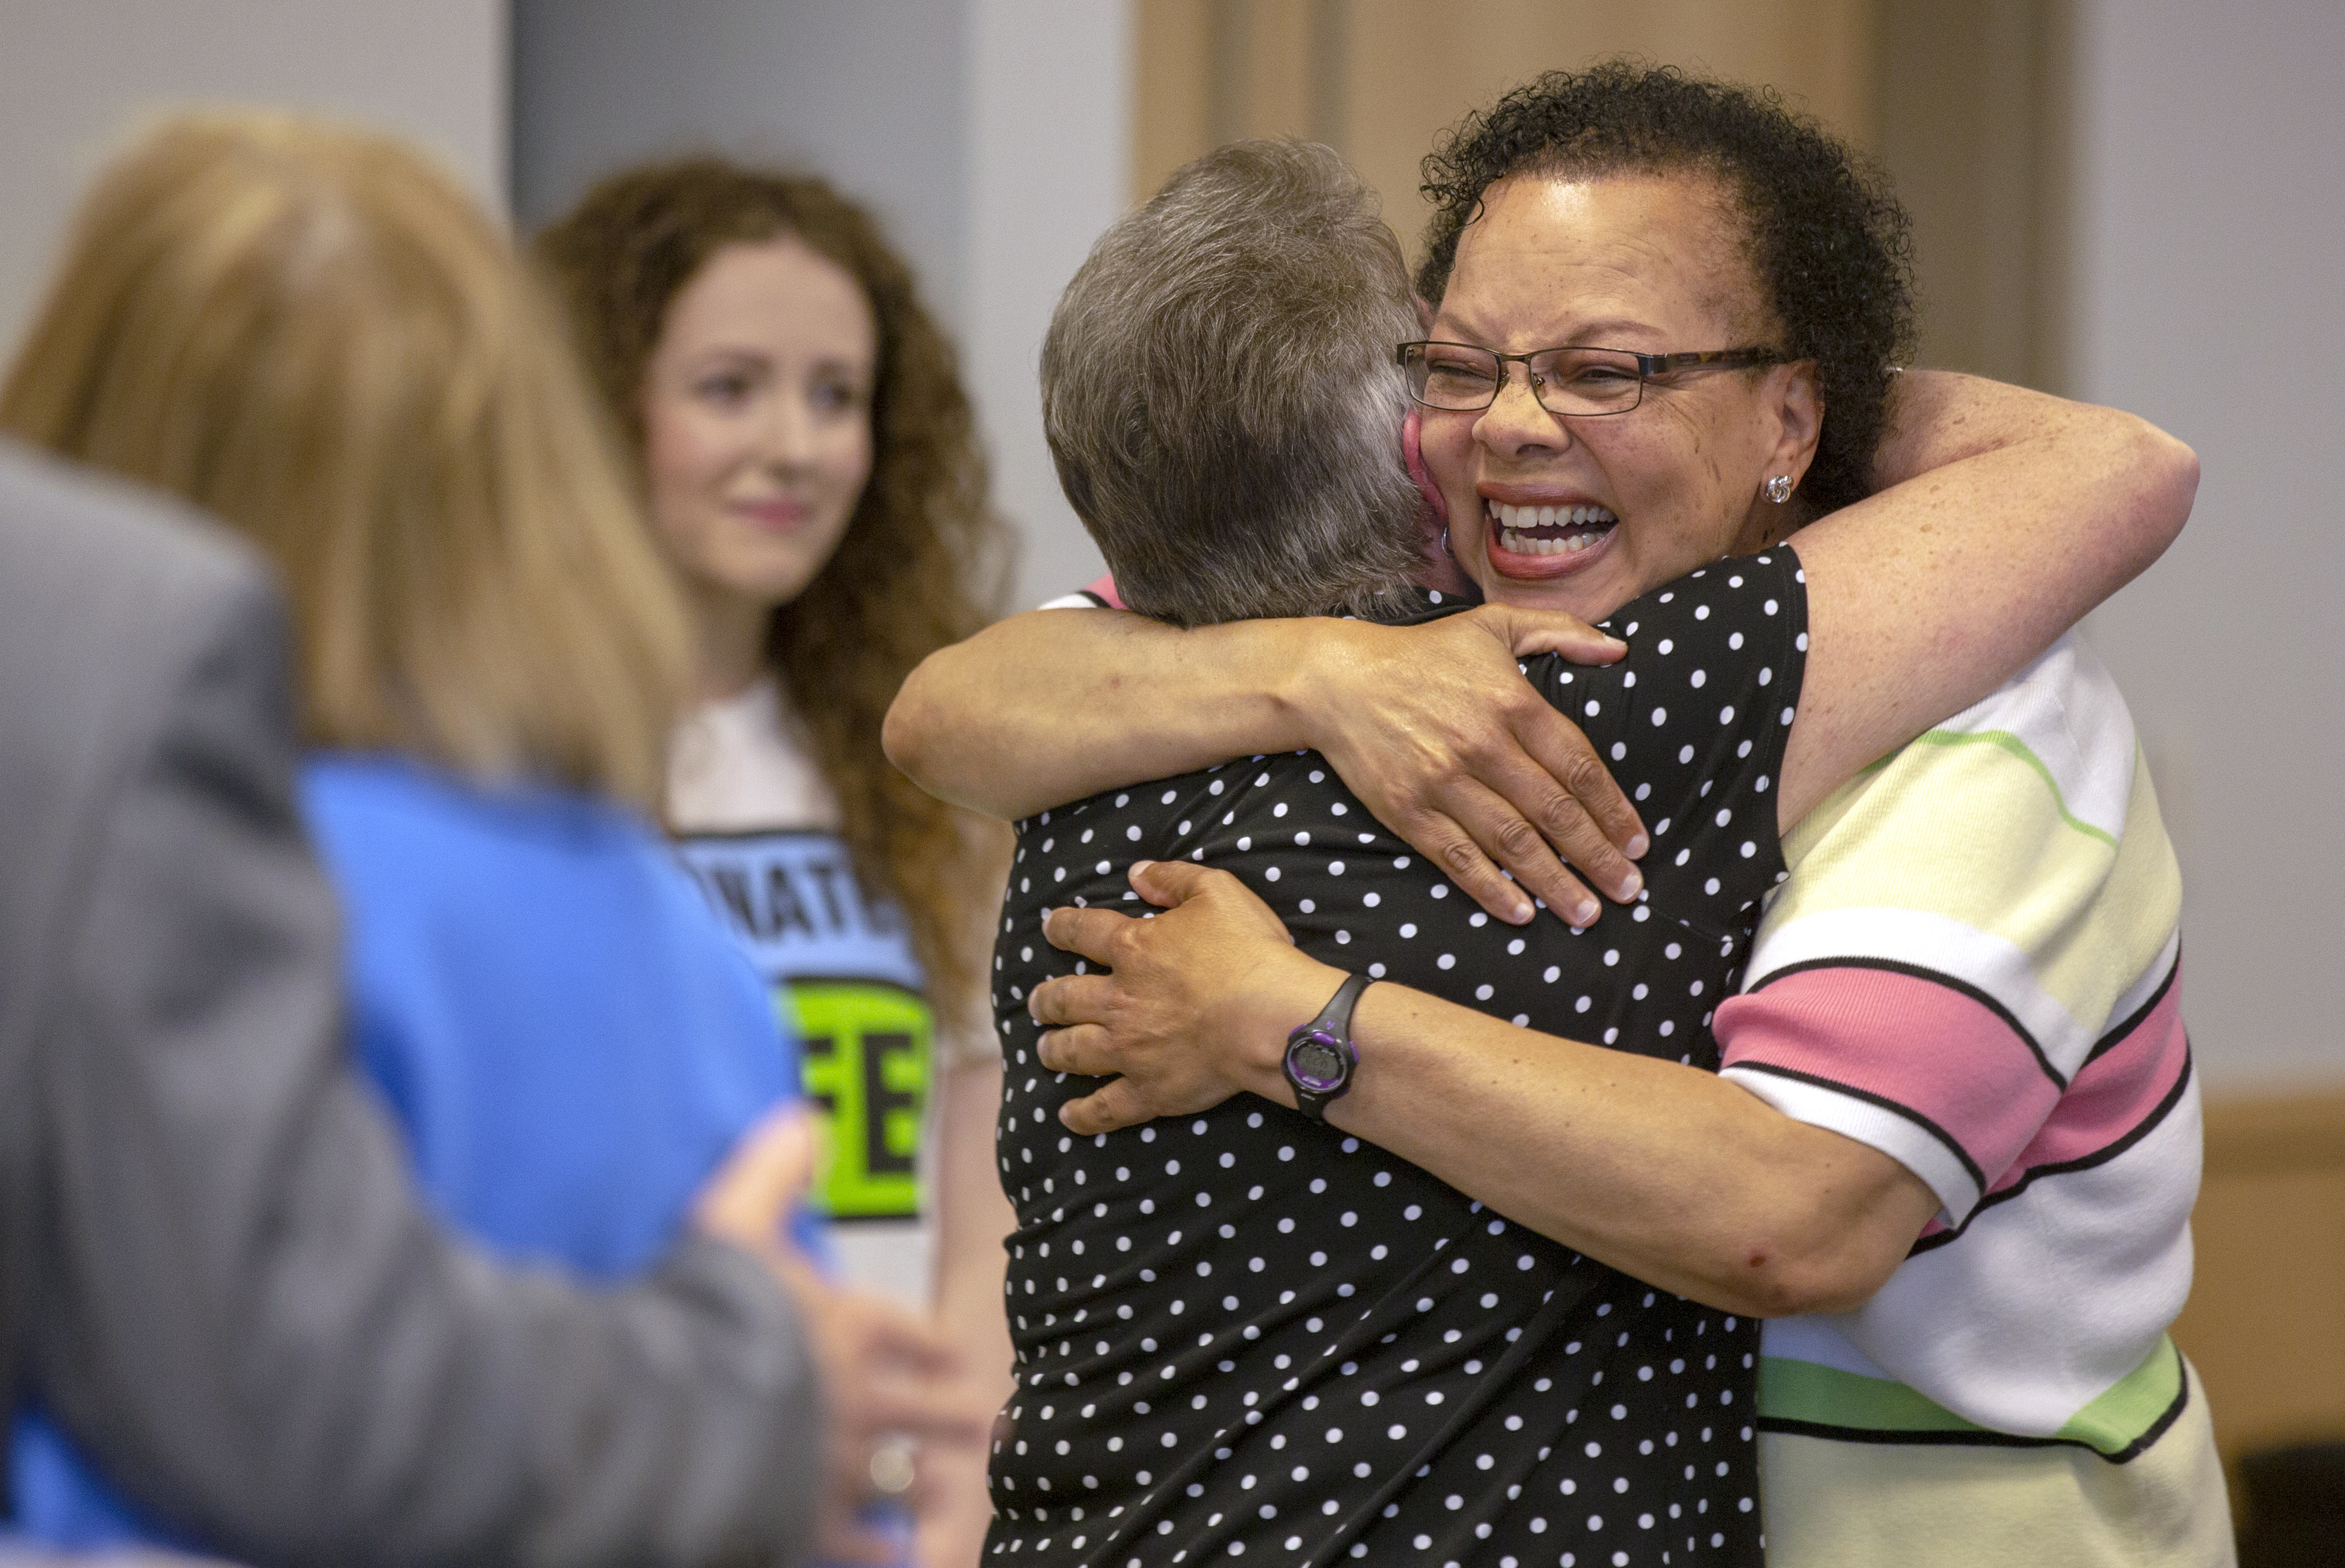 "Jeanette Bennett, right, embraces Gerry Paris. Jeanette is smiling and wearing glasses and a striped sweater. Gerry has her back to the camera and is wearing a polka-dot top. A woman with a ""Donate Life"" T-shirt is in the background. A woman with a blue blazer and a man's arm around her are on the left."